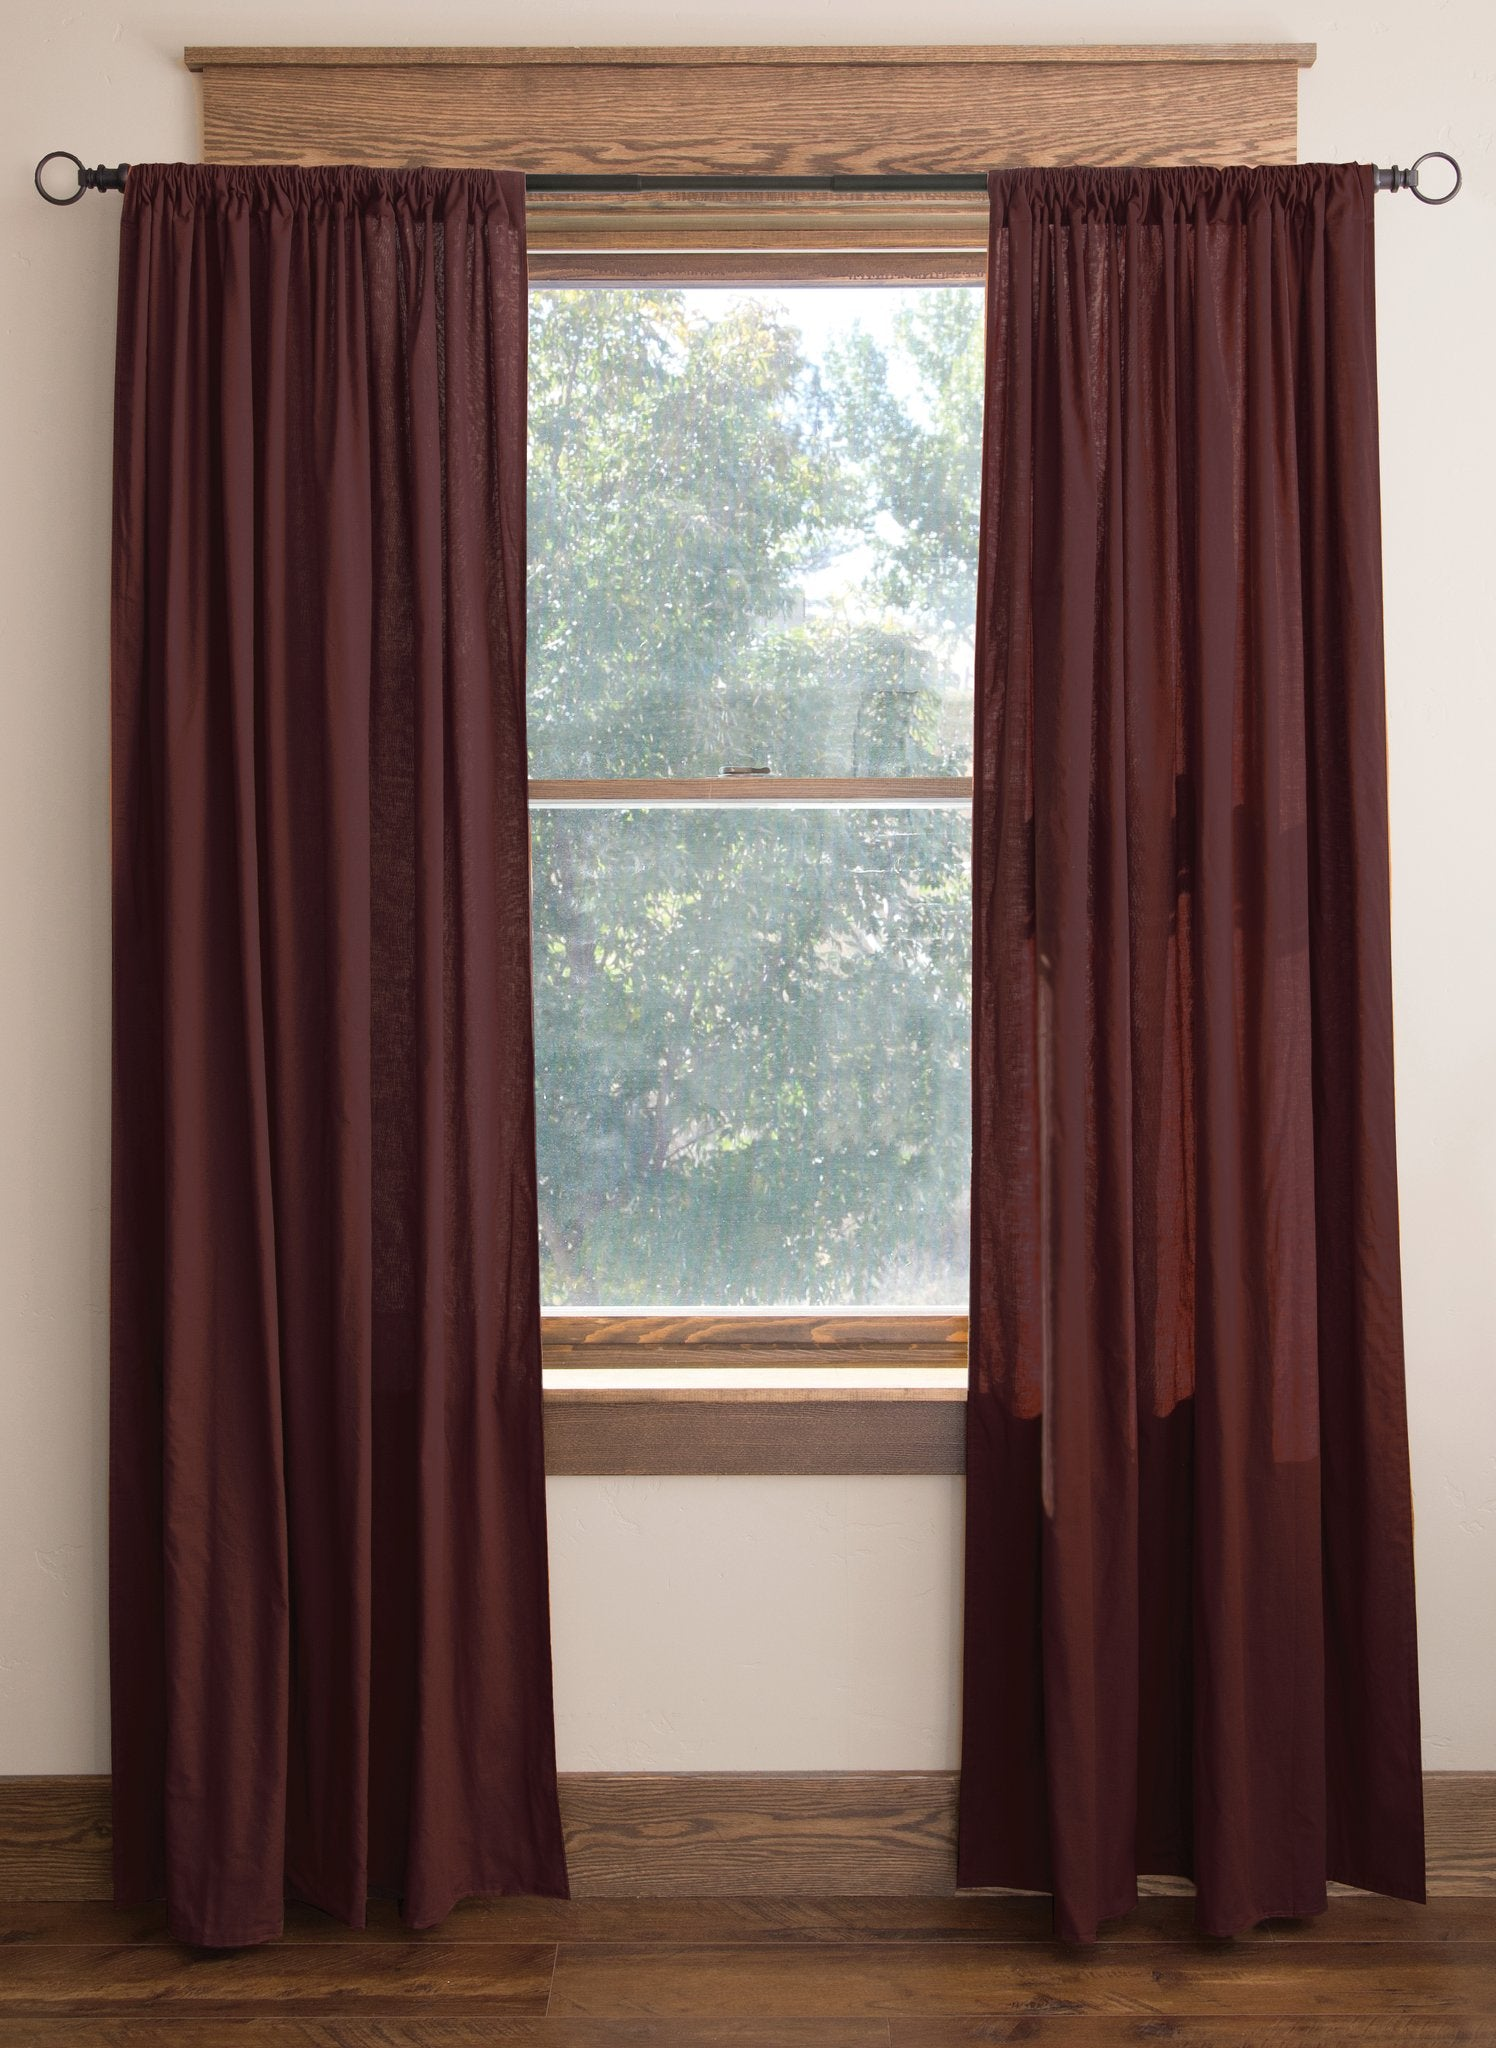 Southwest Harvest Drapes Set Carstens - Unique Linens Online